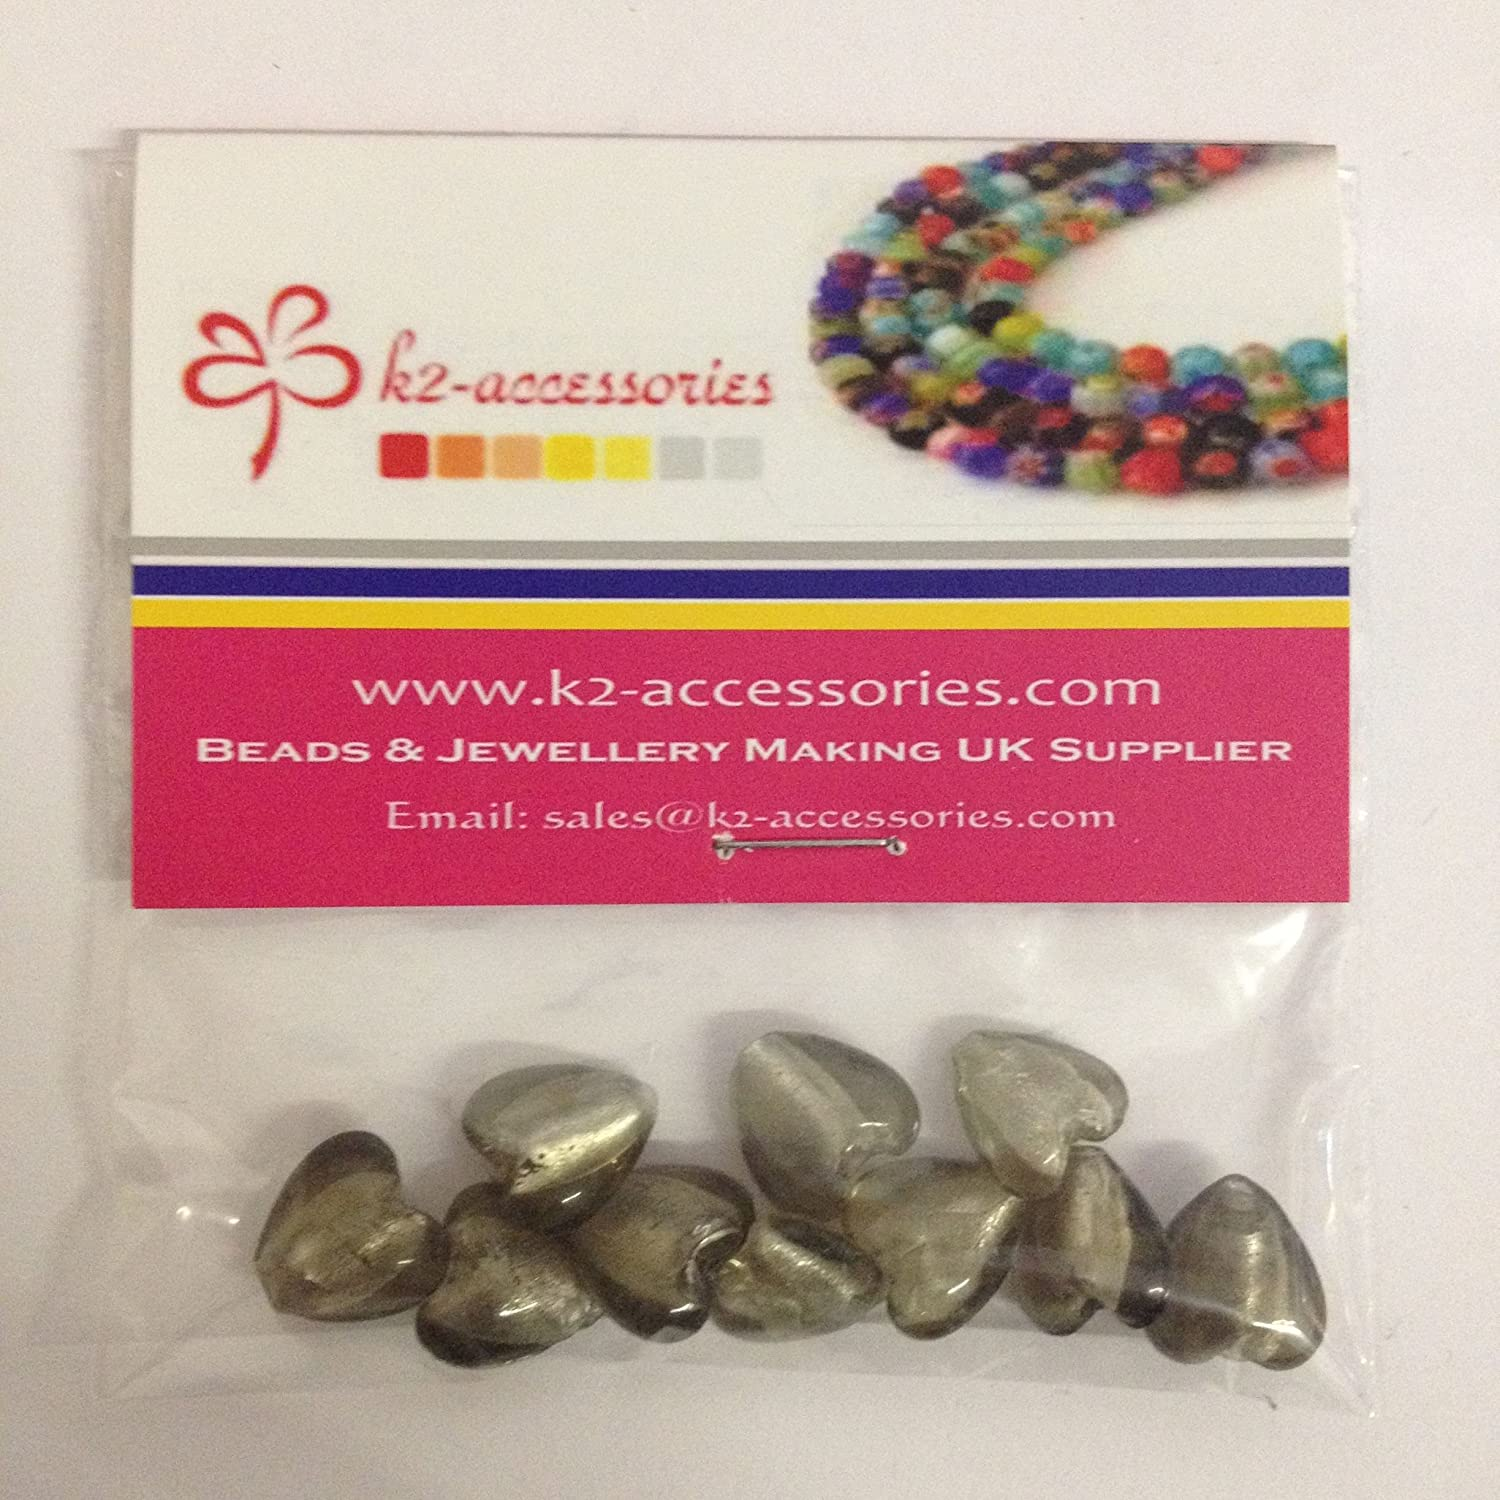 10 pieces 12mm Silver Foil Heart Glass Beads - Grey - A4118 k2-accessories